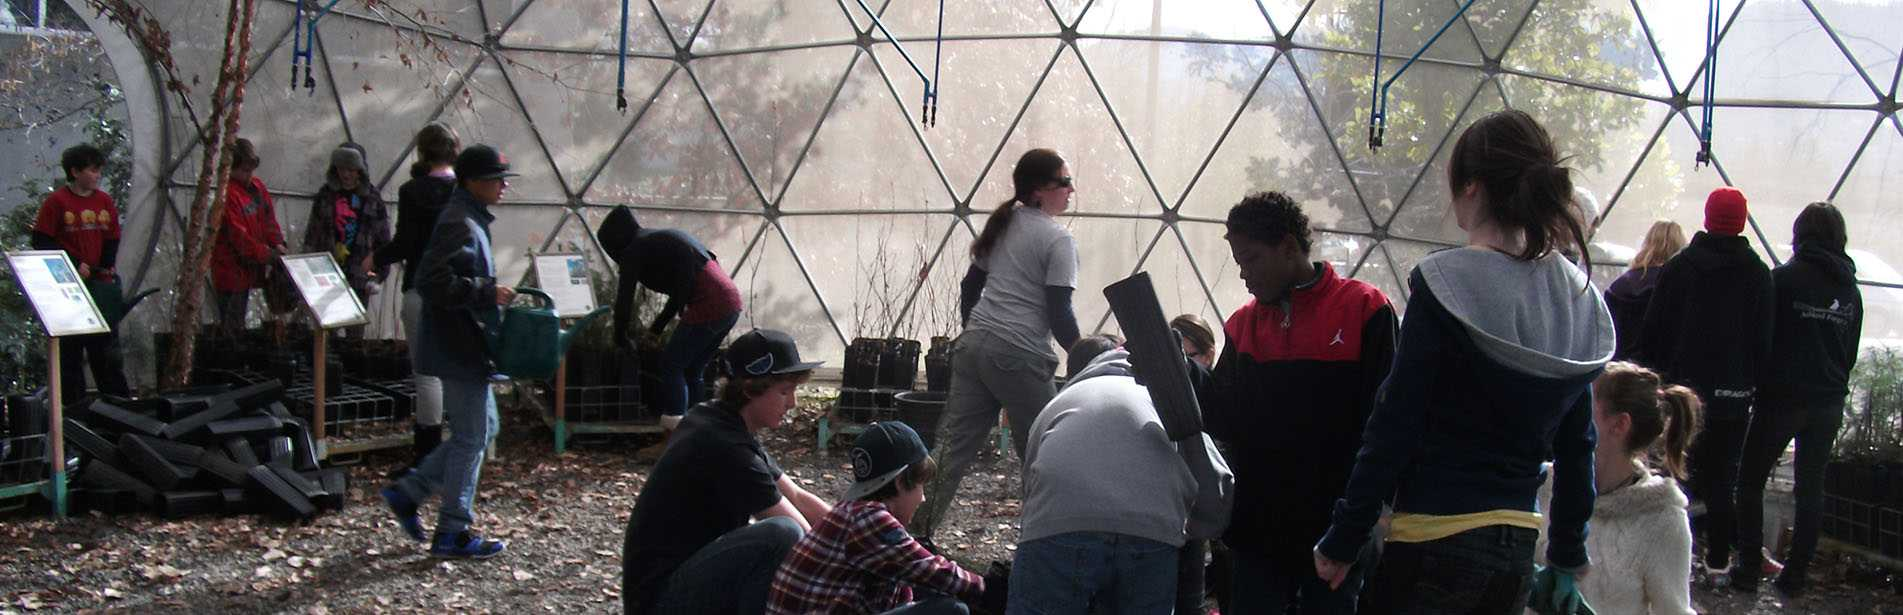 Science Works Greenhouse Dome